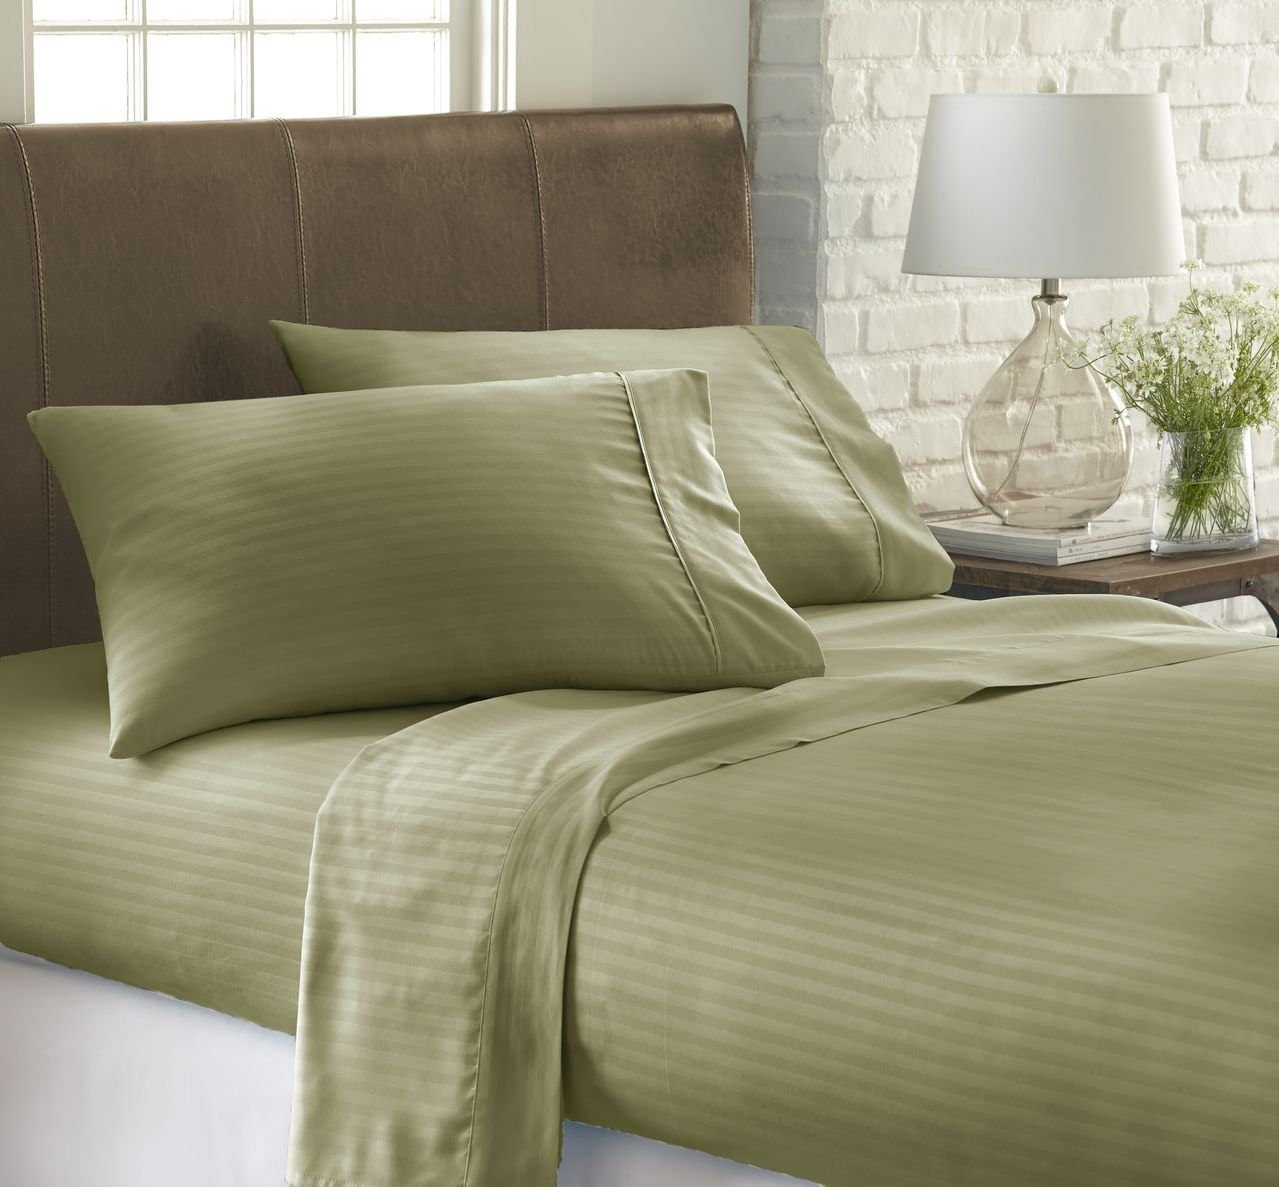 ienjoy Home IEH Queen-SAGE Embossed Dobby Stripe 4 Piece Quality Sheet Set